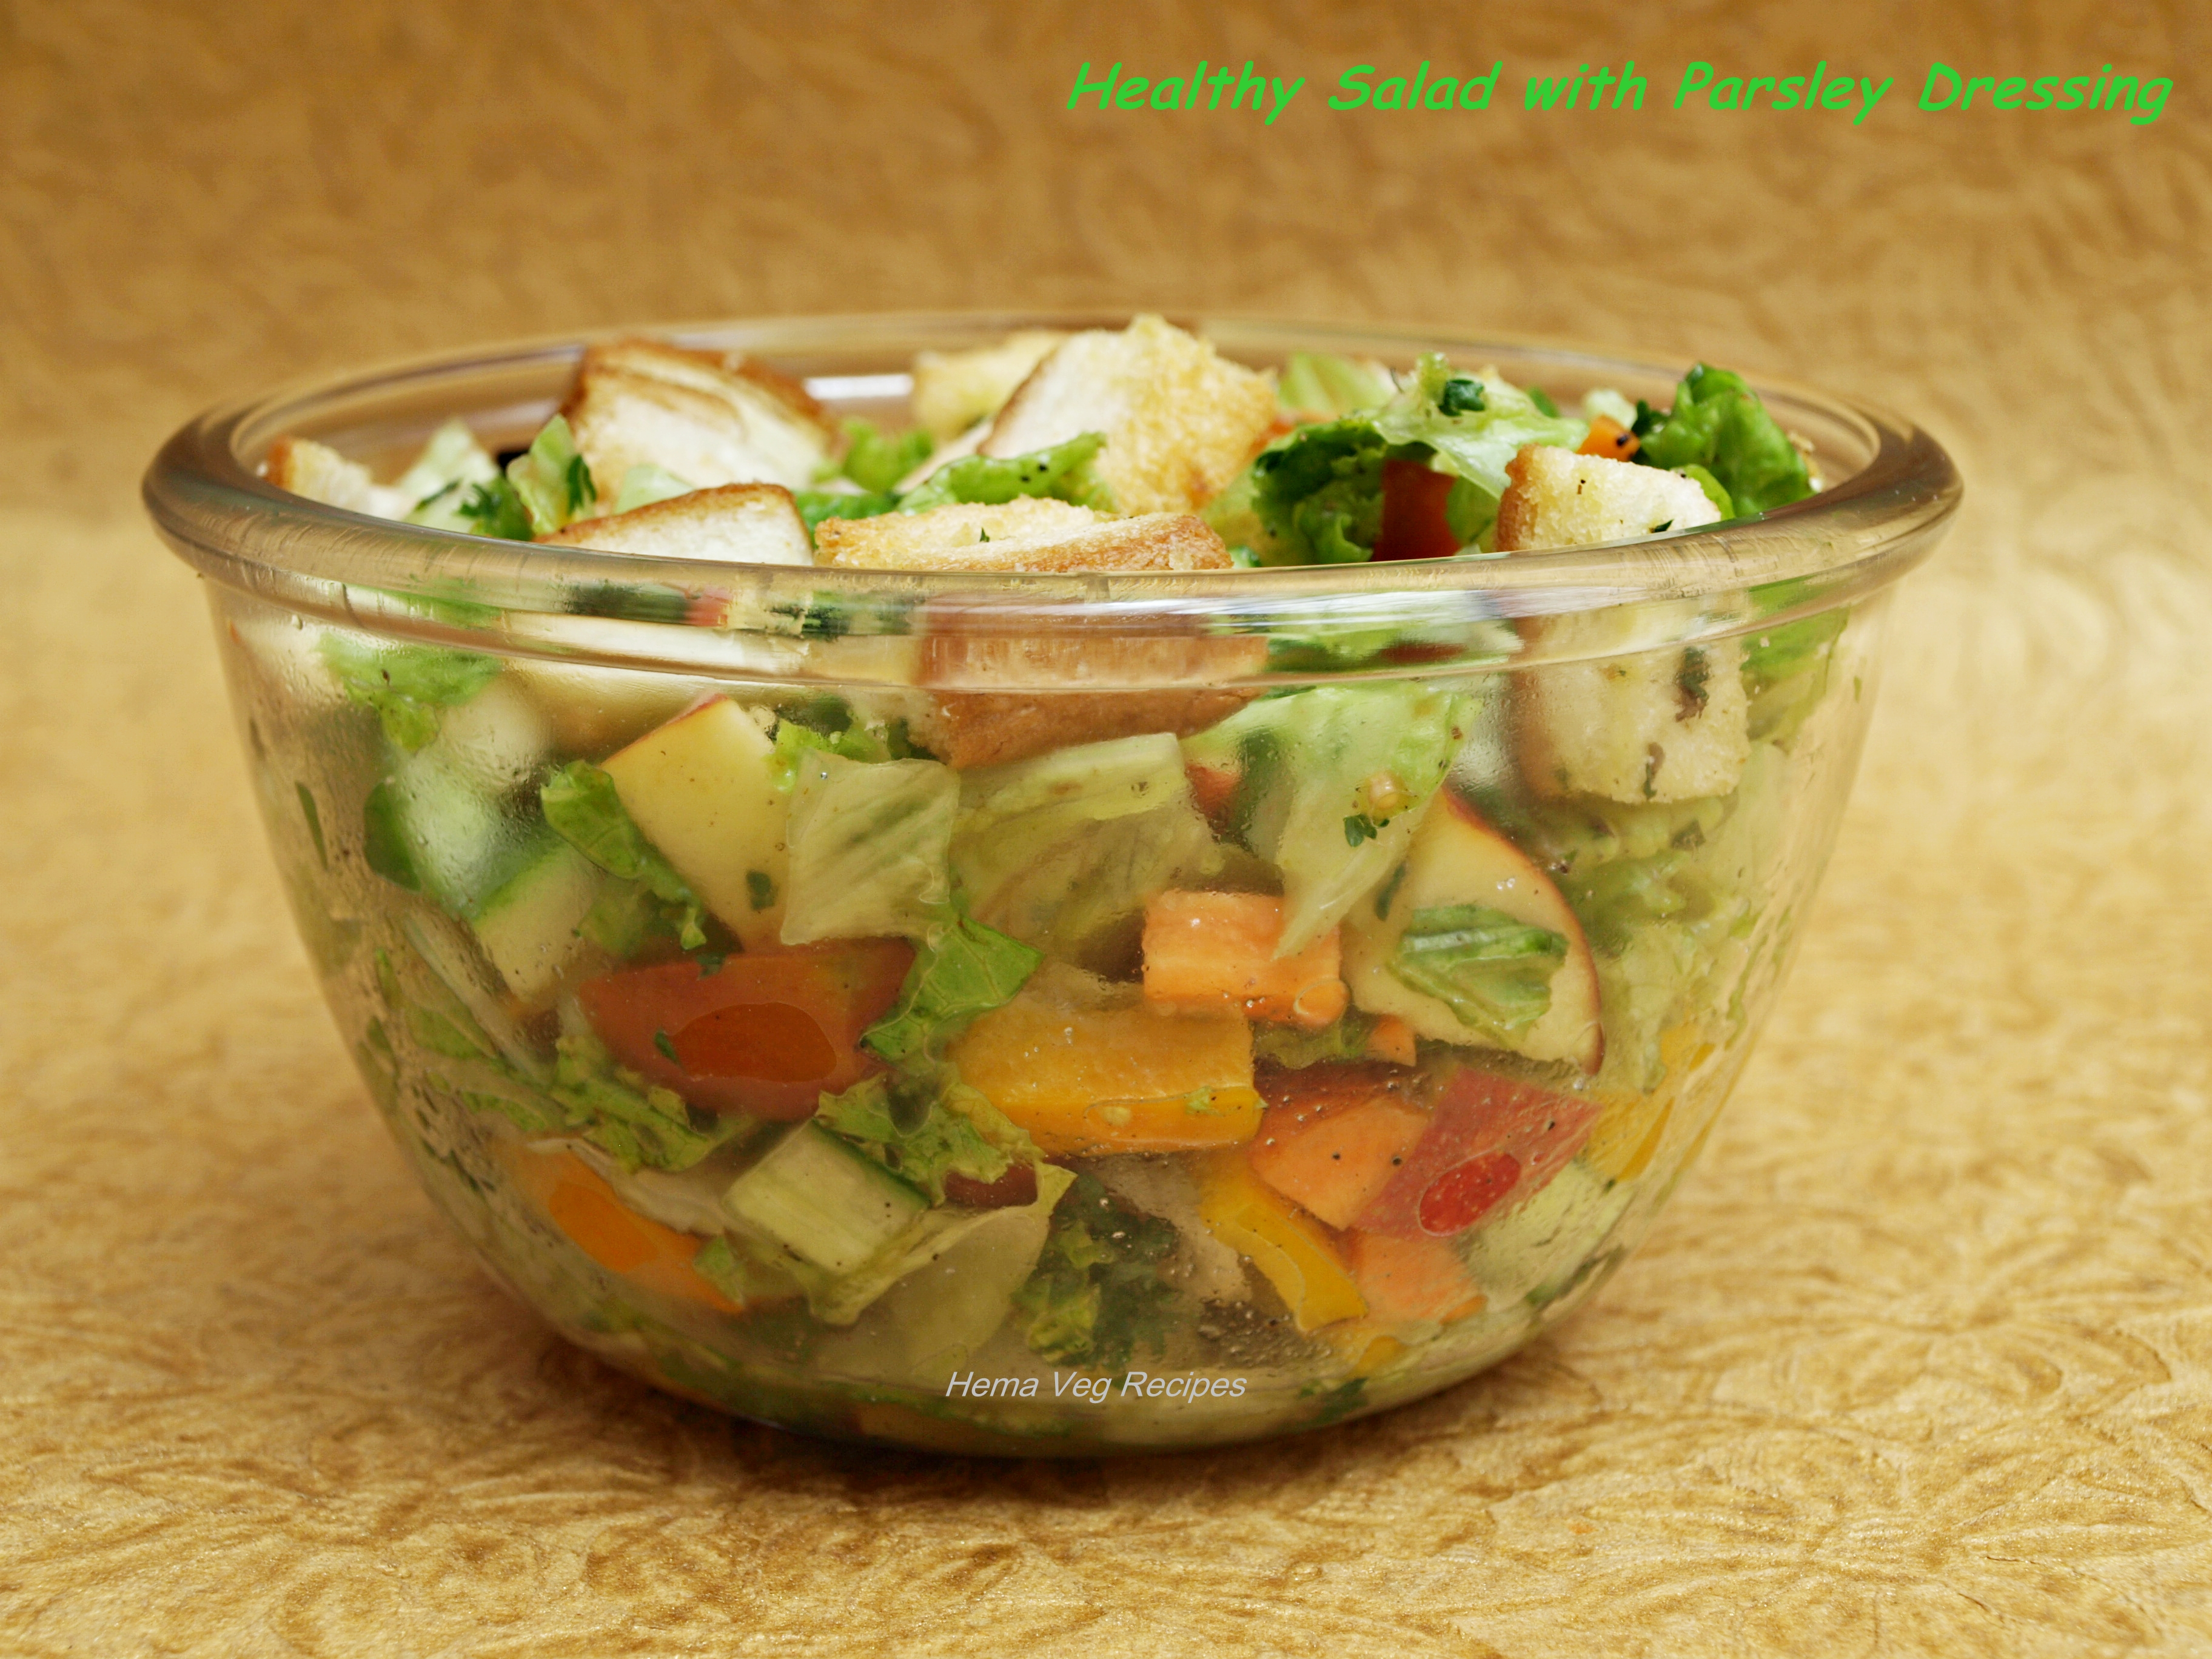 healthy-salad-with-parsley-dressing-preparation